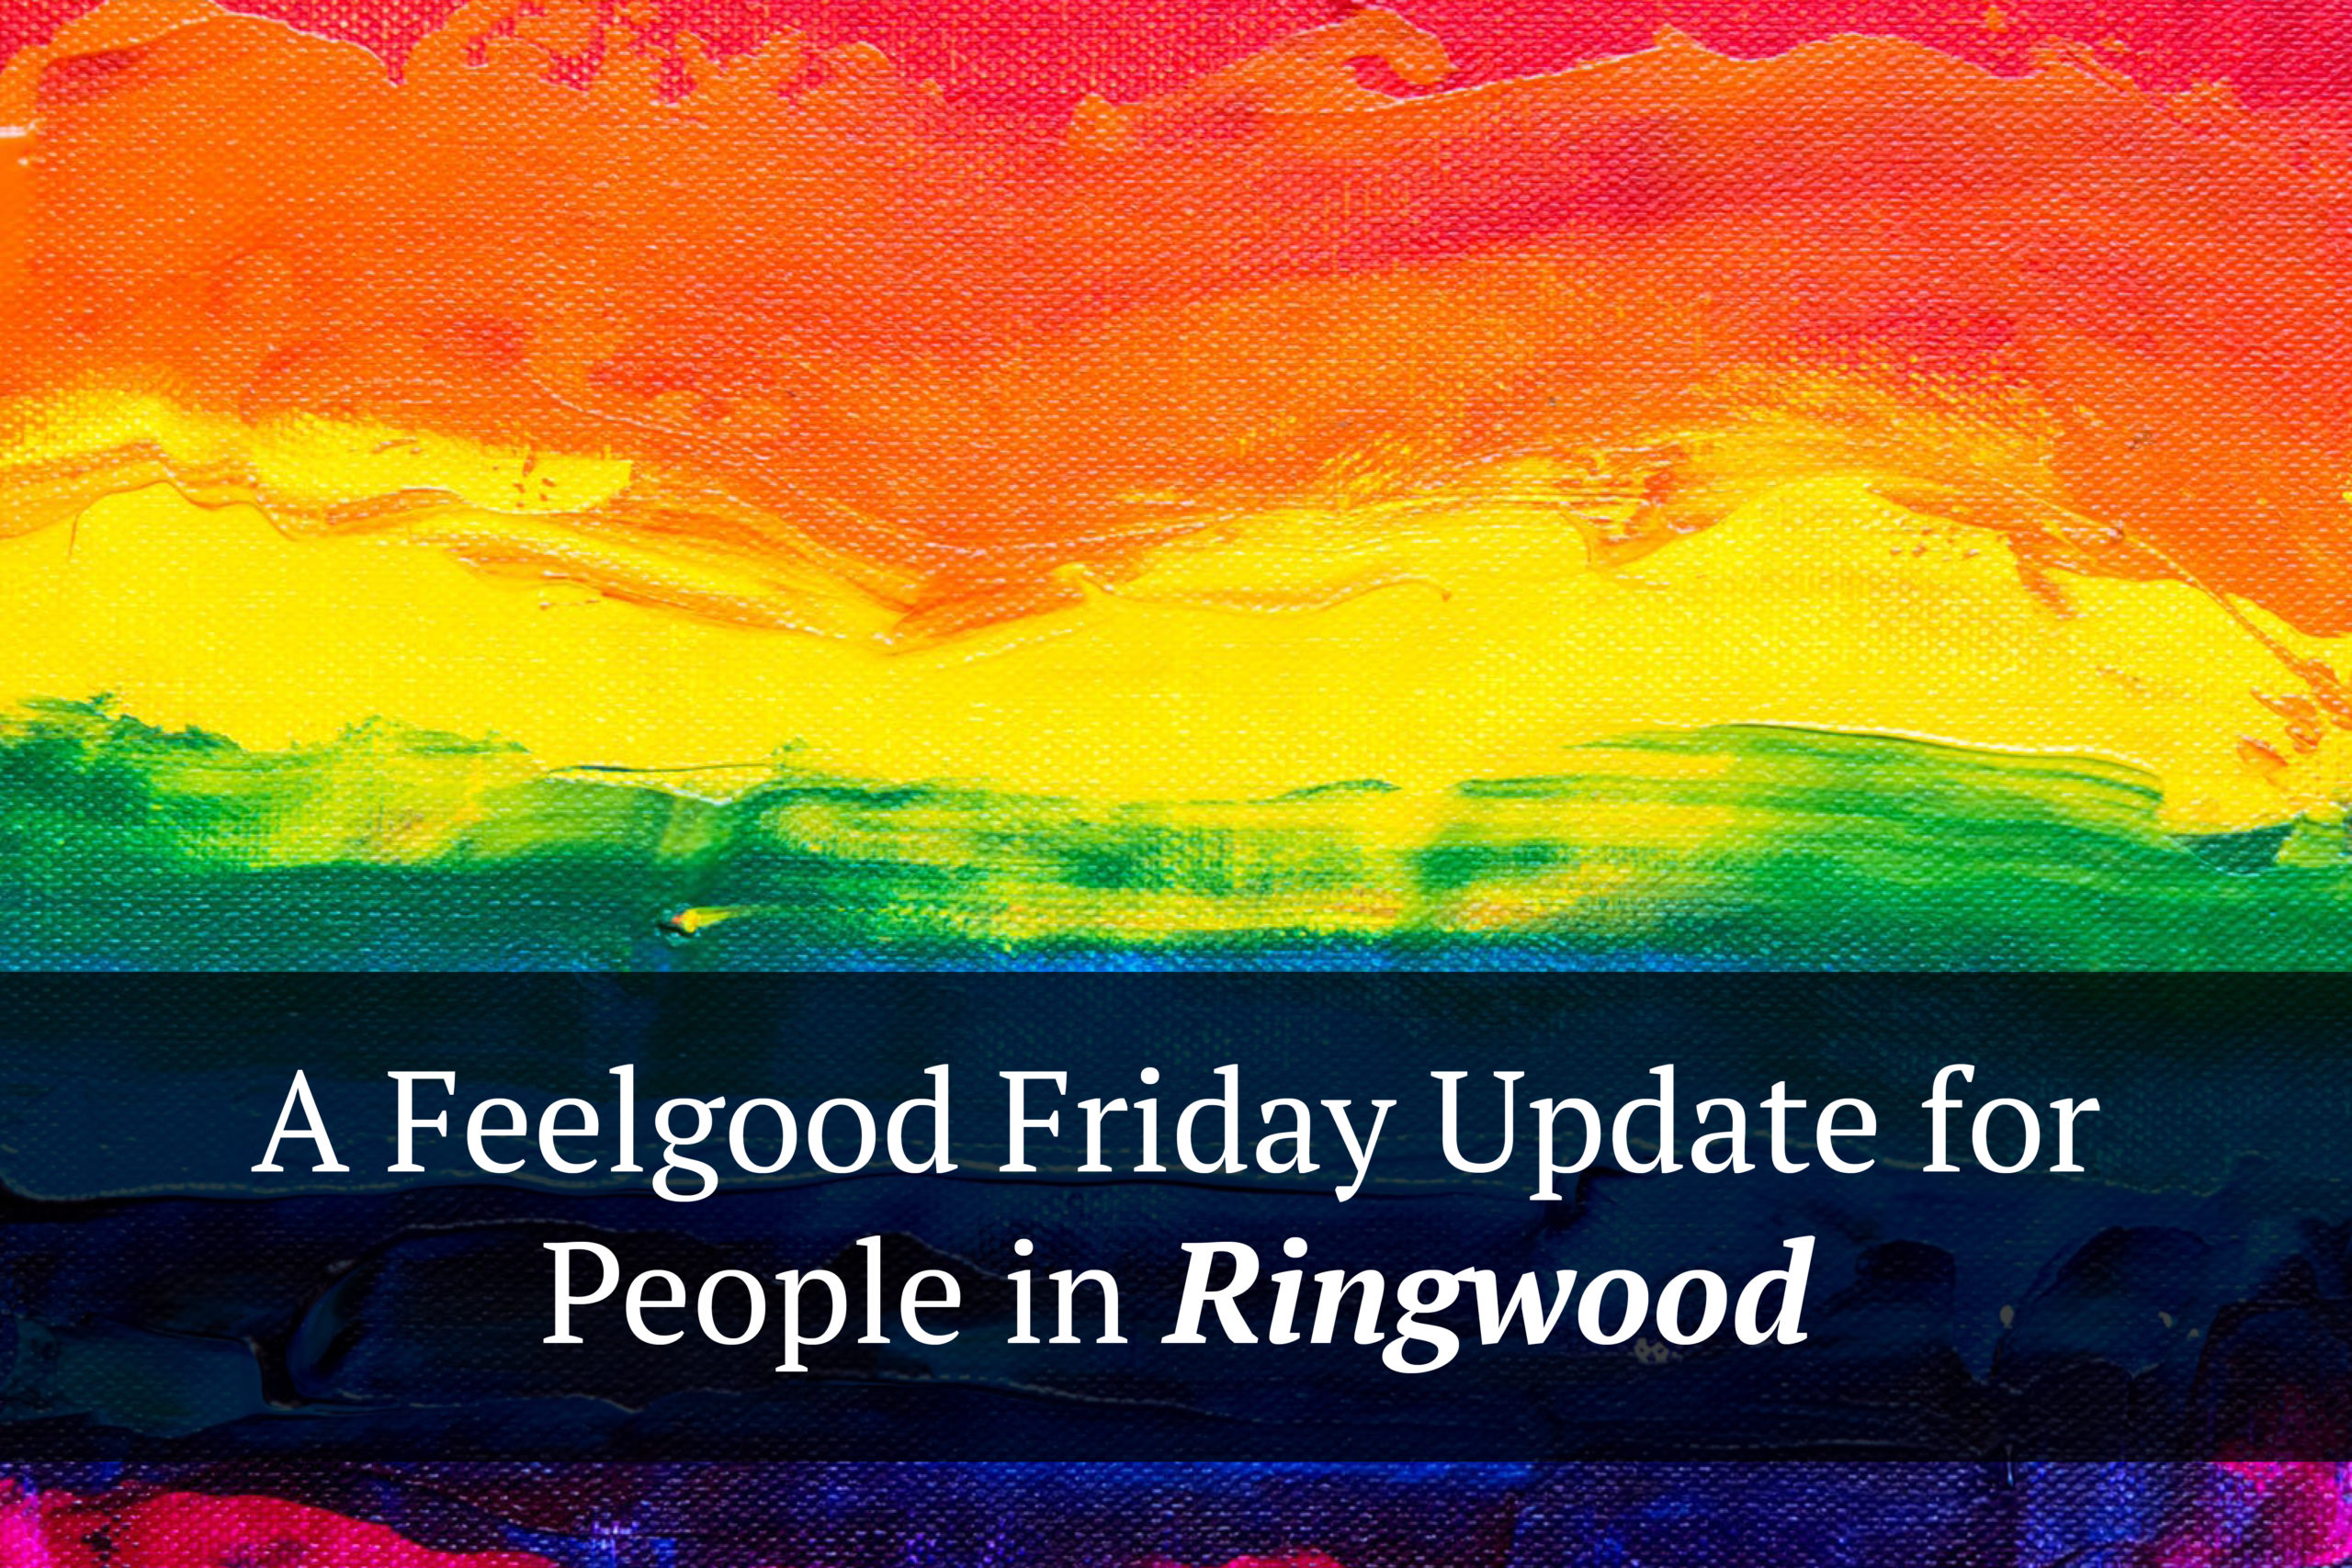 A Feelgood Friday Update for People in Ringwood